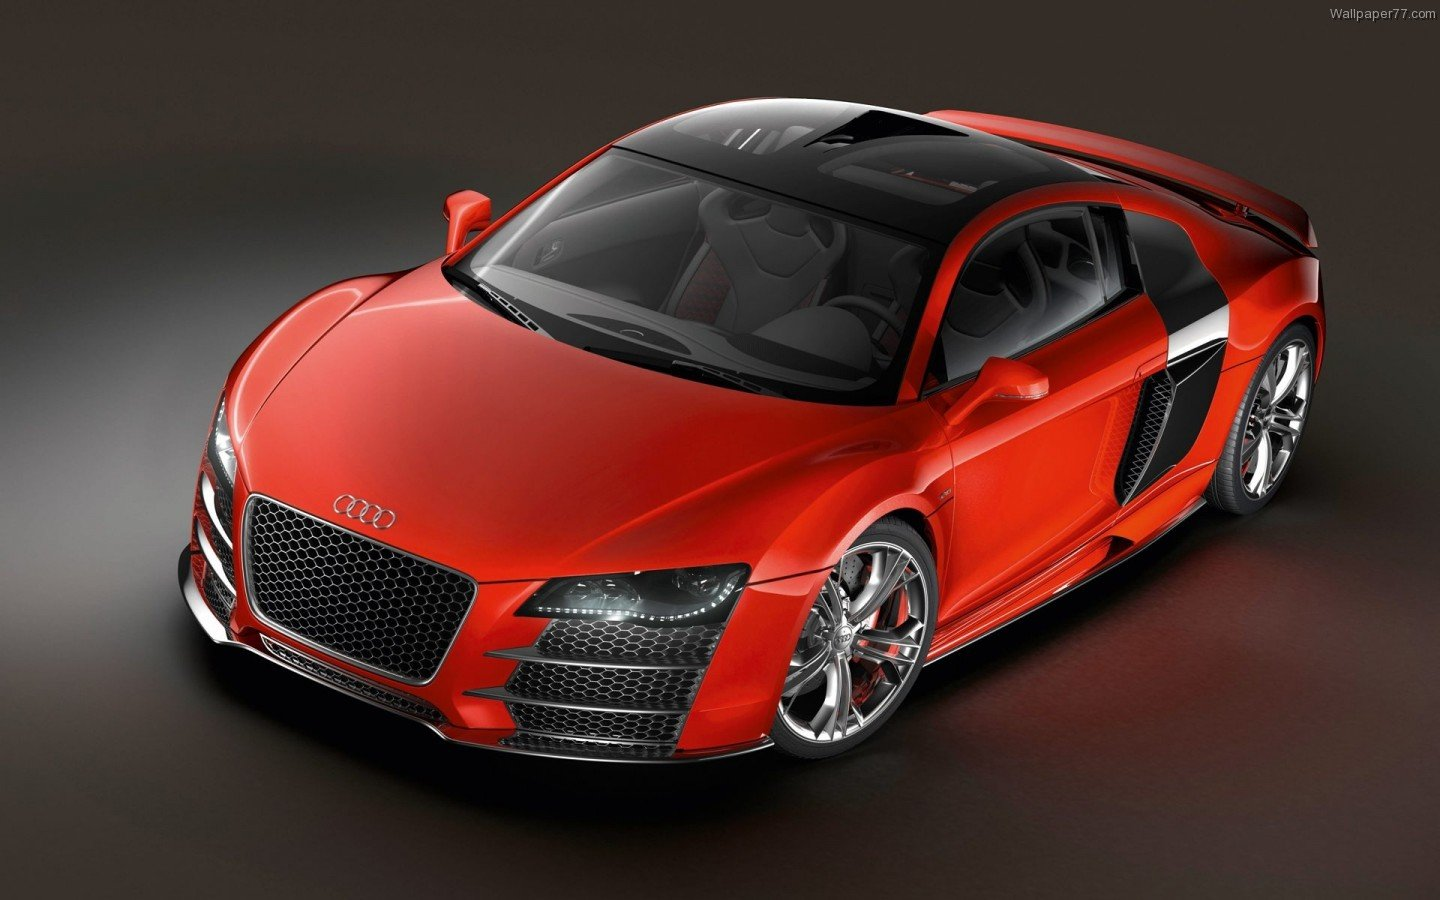 Latest Hd Car Wallpapers Red Audi R8 Wallpaper Free Download